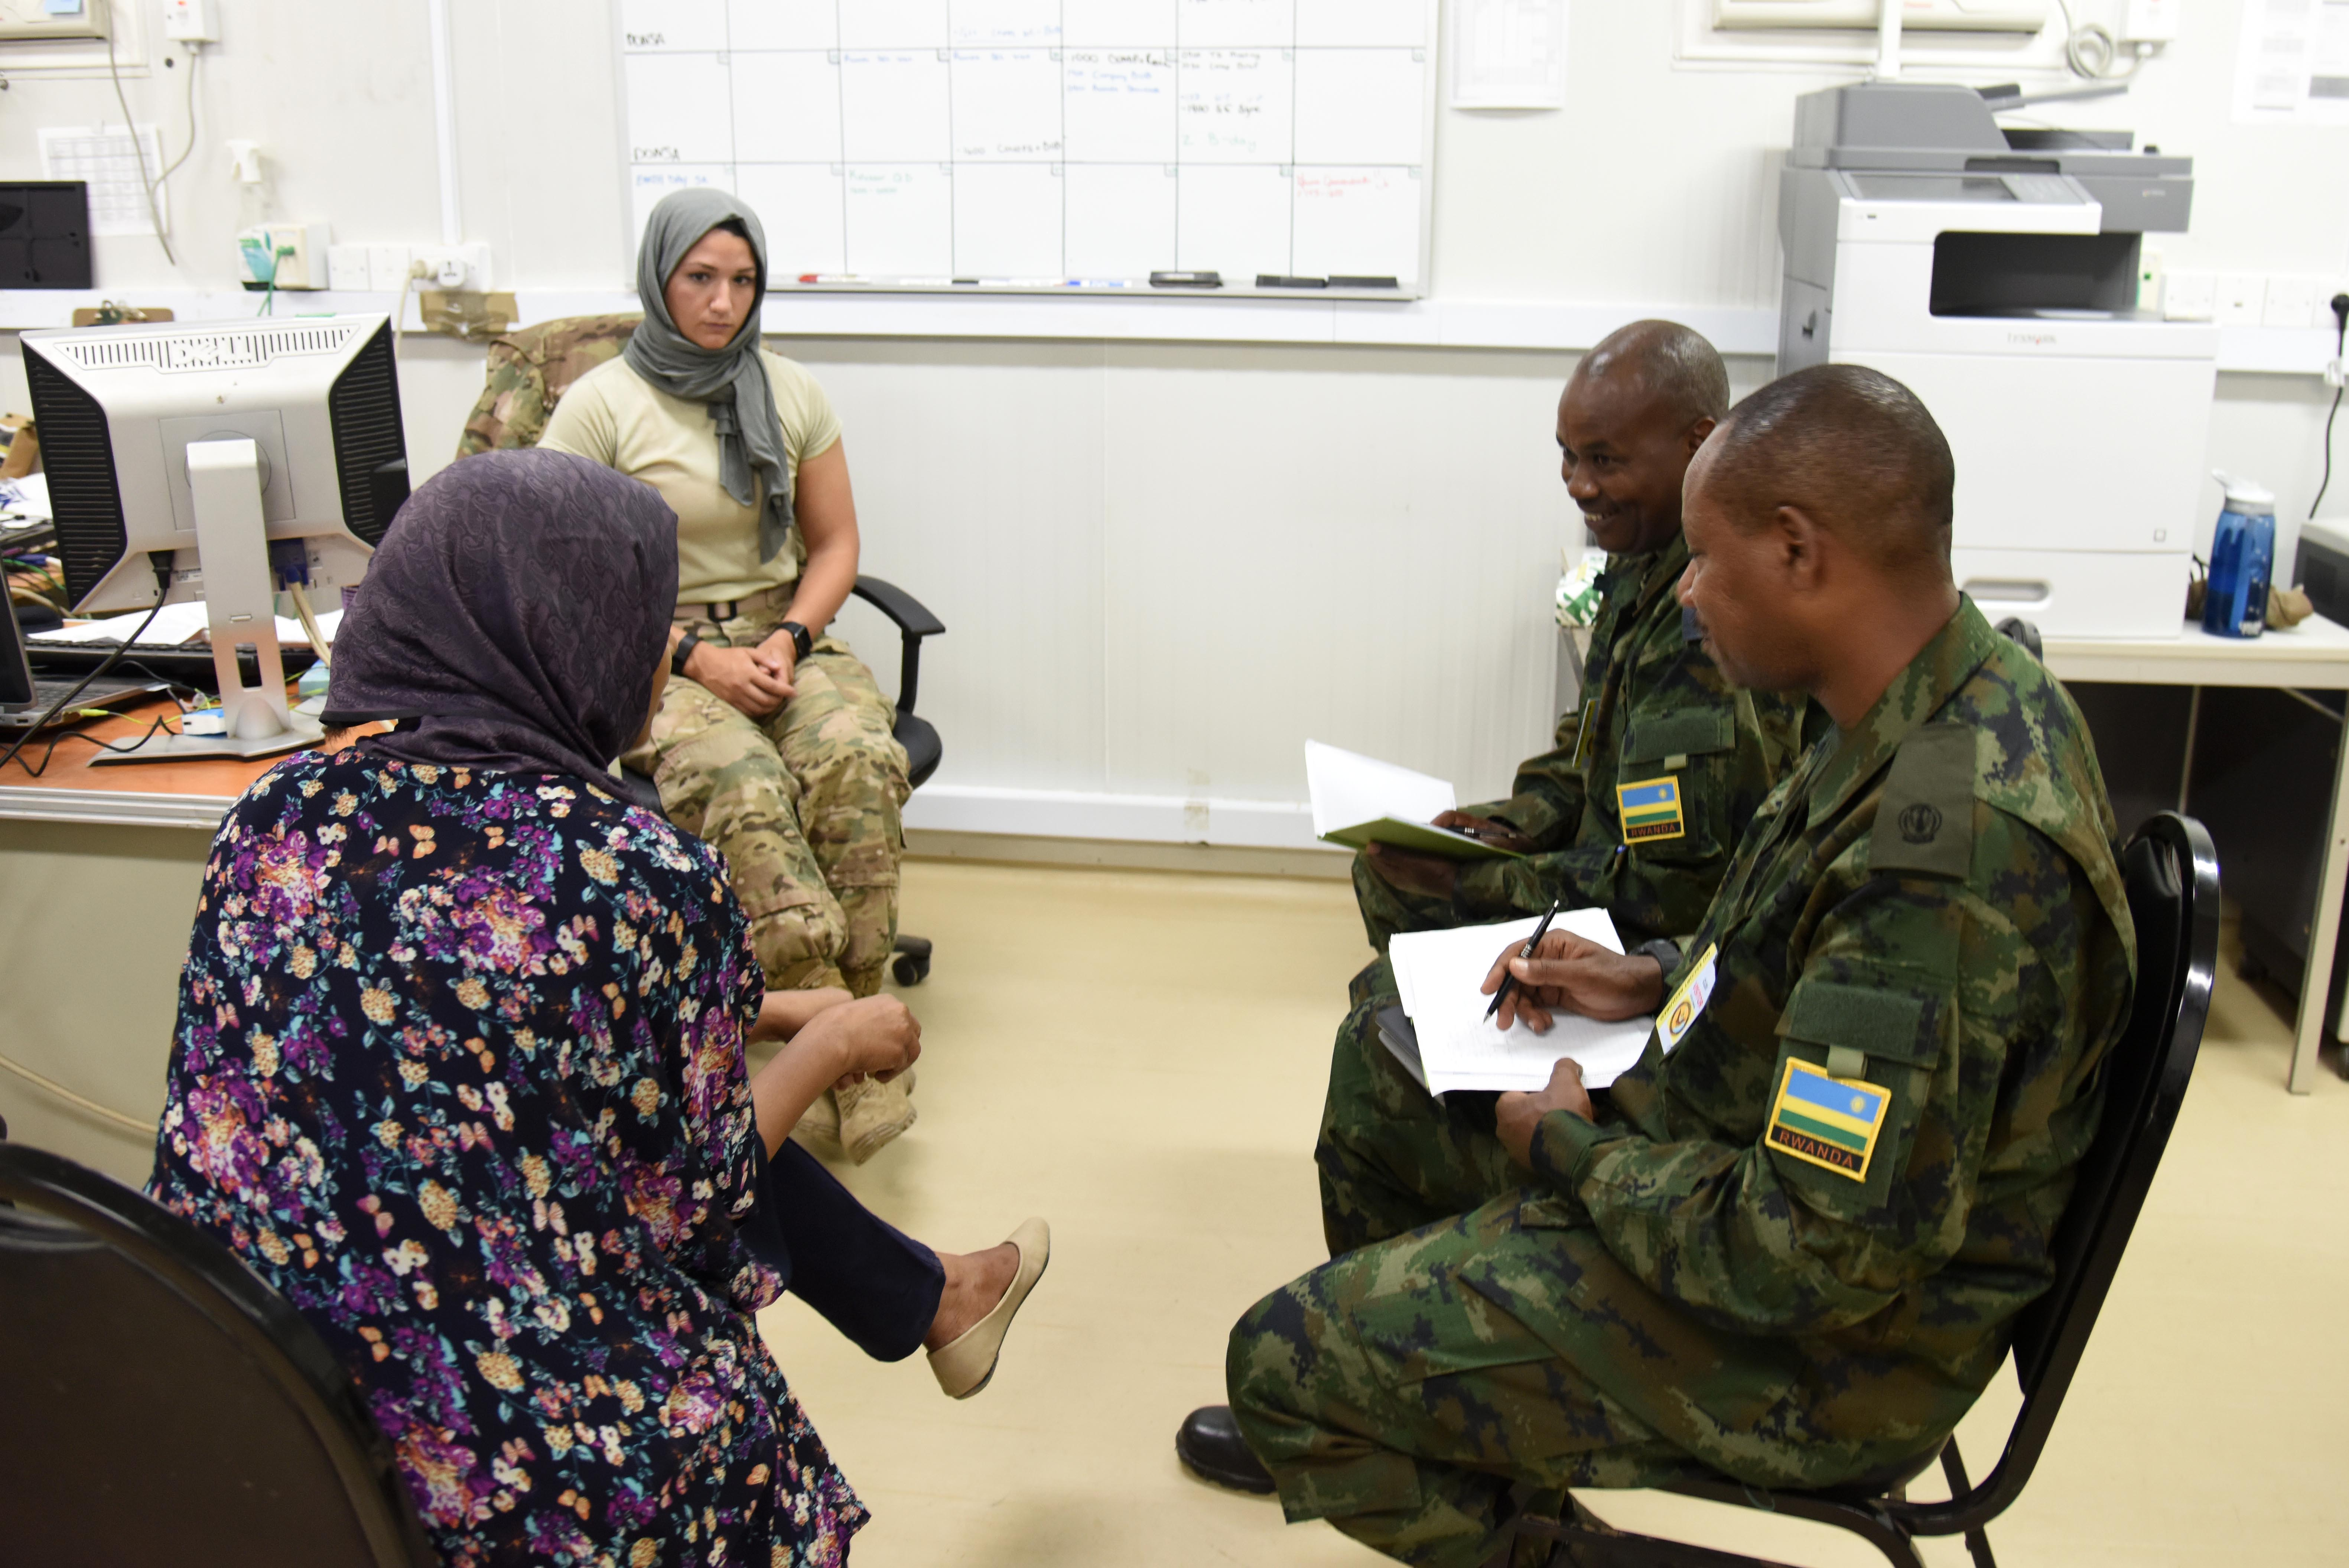 Rwanda Defence Force Civil-Military Affairs officers use an interpreter to gather information from a role player during a simulated needs assessment, April 7, 2016, at Camp Lemonnier, Djibouti. Both U.S. and Rwandan forces rely on interpreters to not only relay information, but also help with cultural understanding. (U.S. Air Force photo by Staff Sgt. Victoria Sneed)